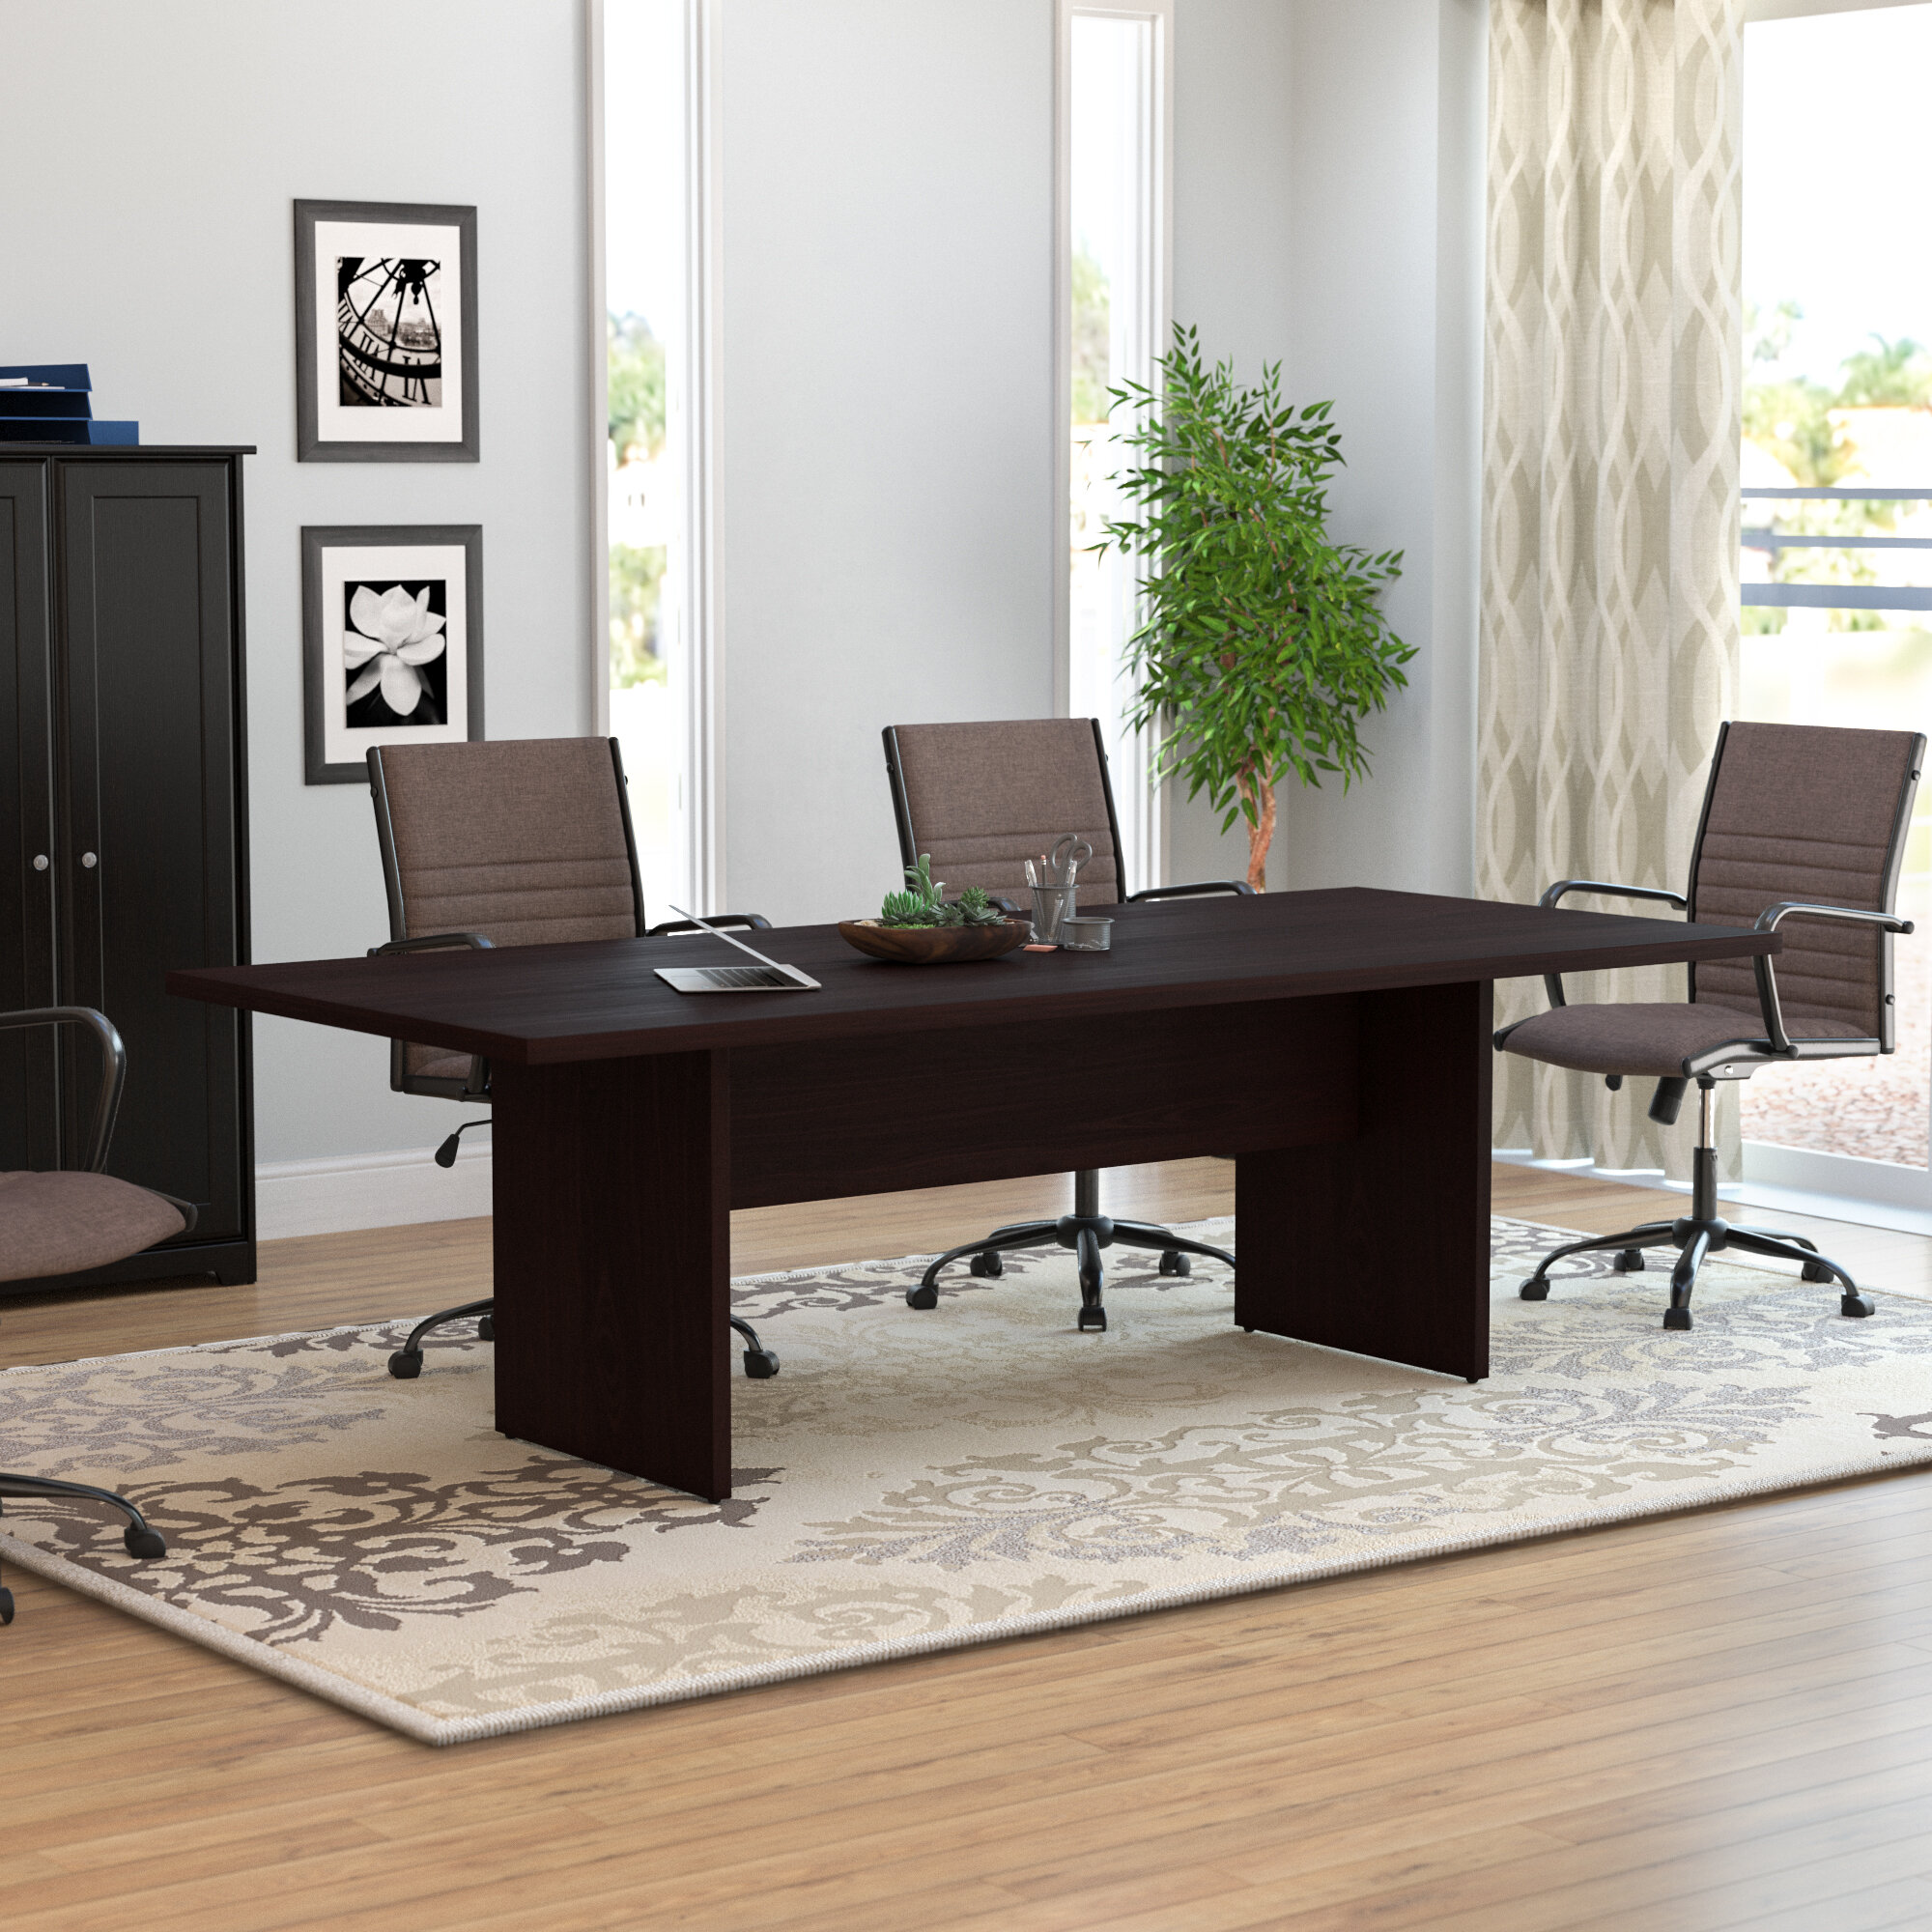 Rhinebeck Rectangular Conference Table